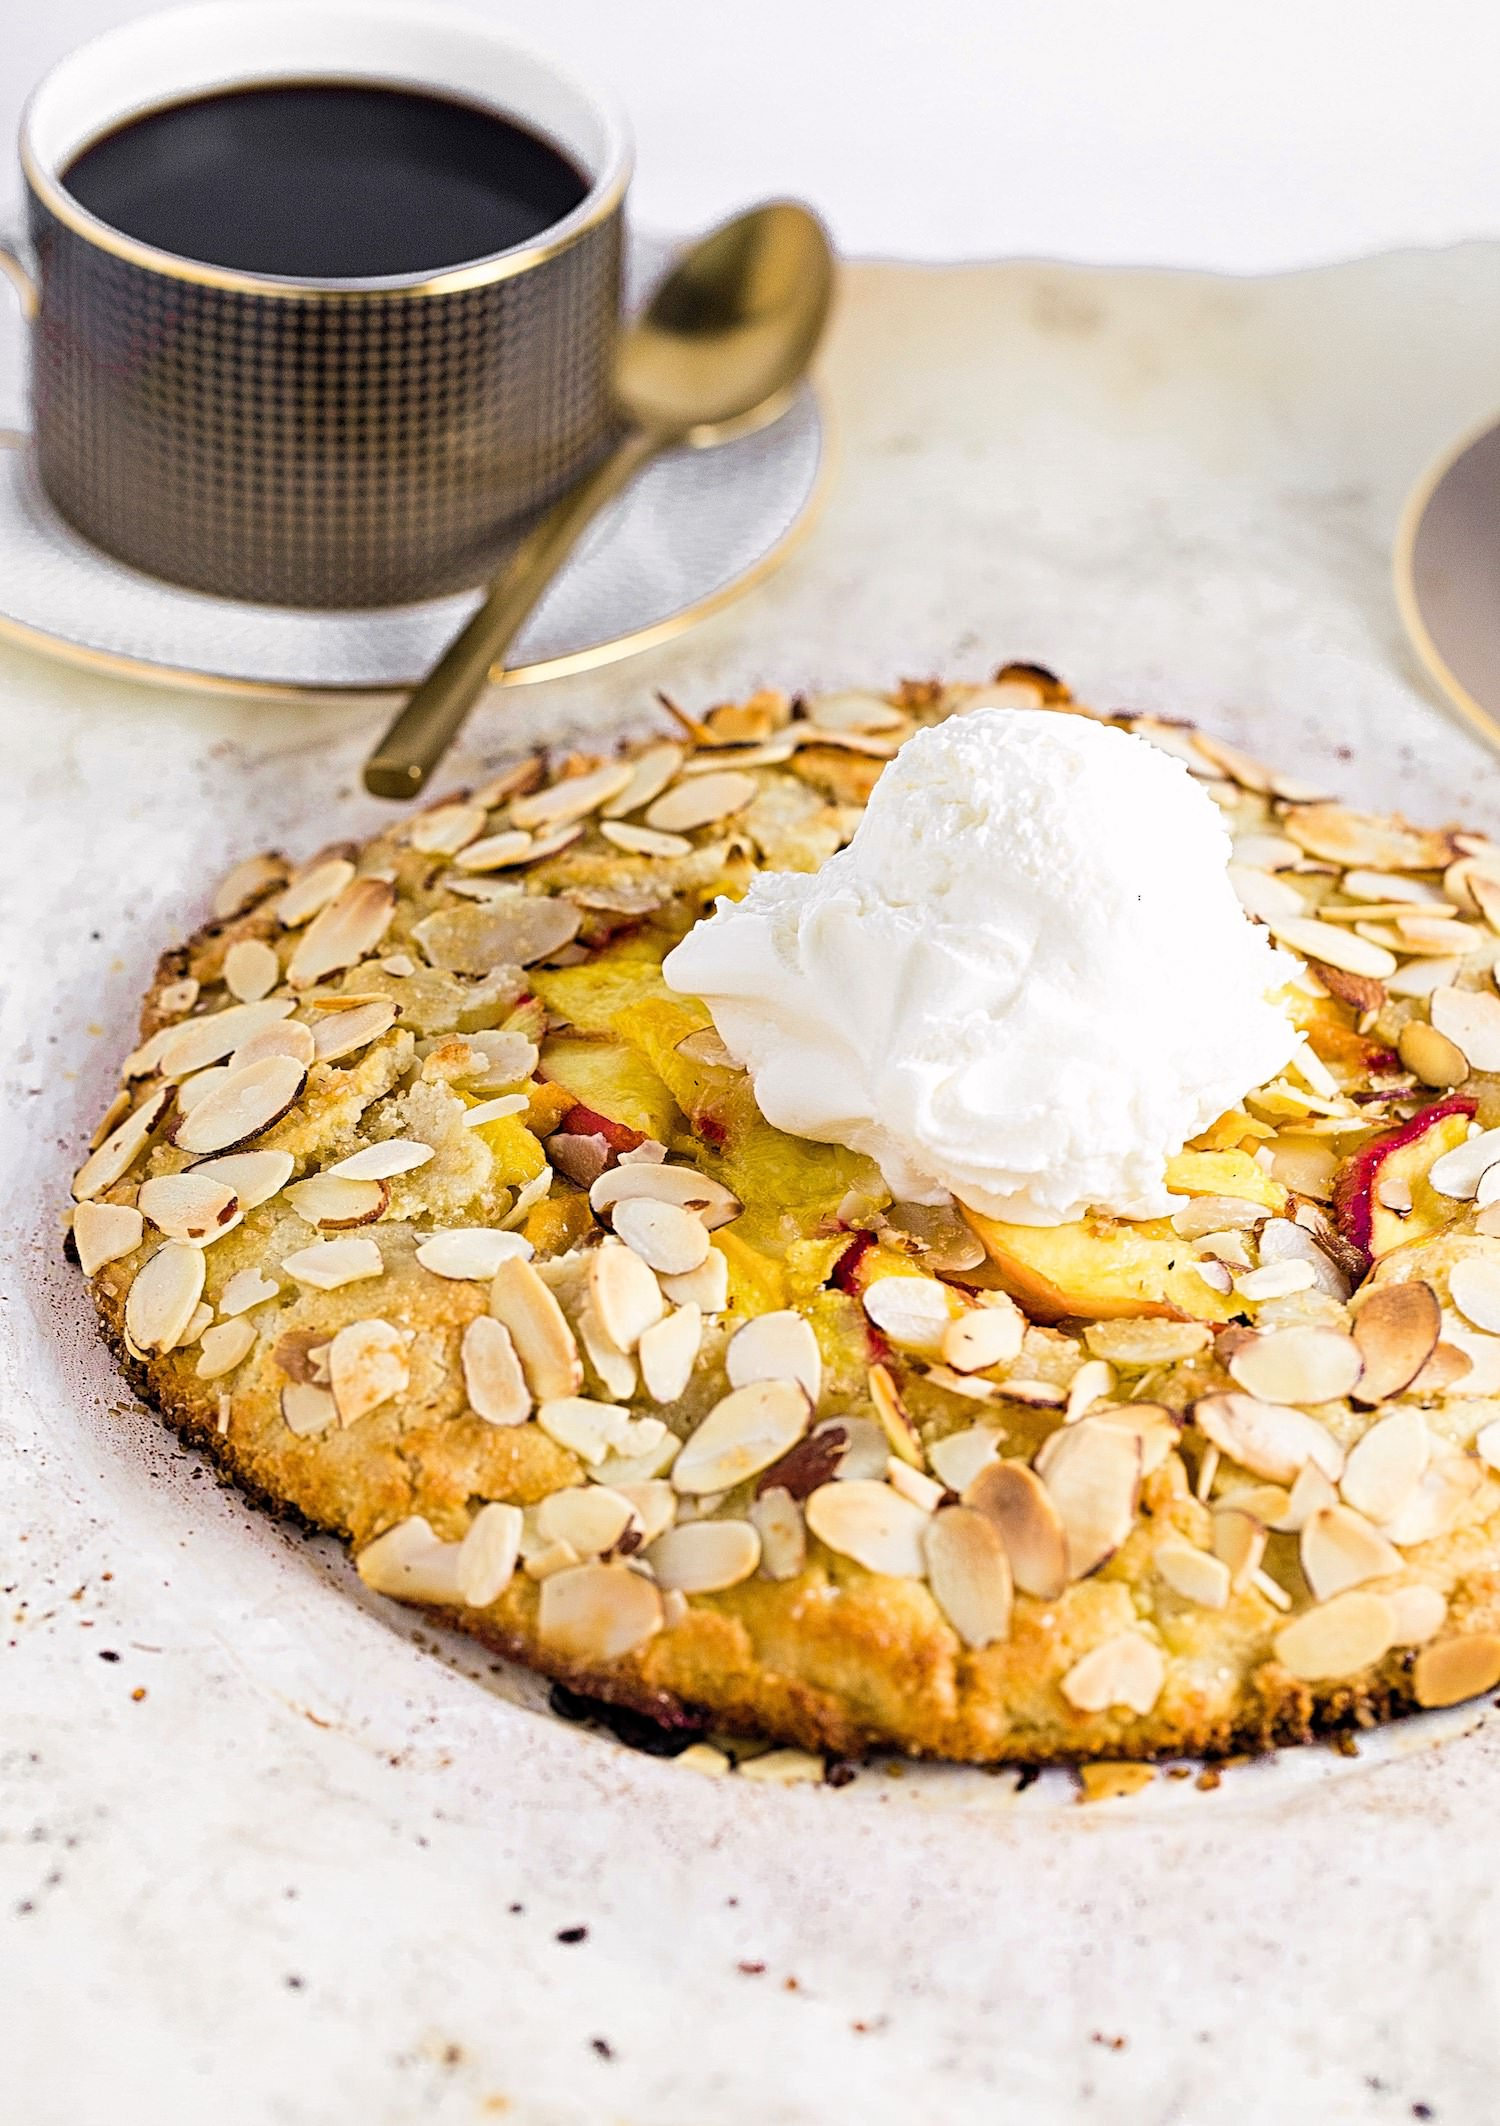 Gluten-Free Almond Peach Galette: almond flour crust (that requires no fridge chilling!) filled with a juicy peach + almond filling. So easy and beautiful! | TrufflesandTrends.com